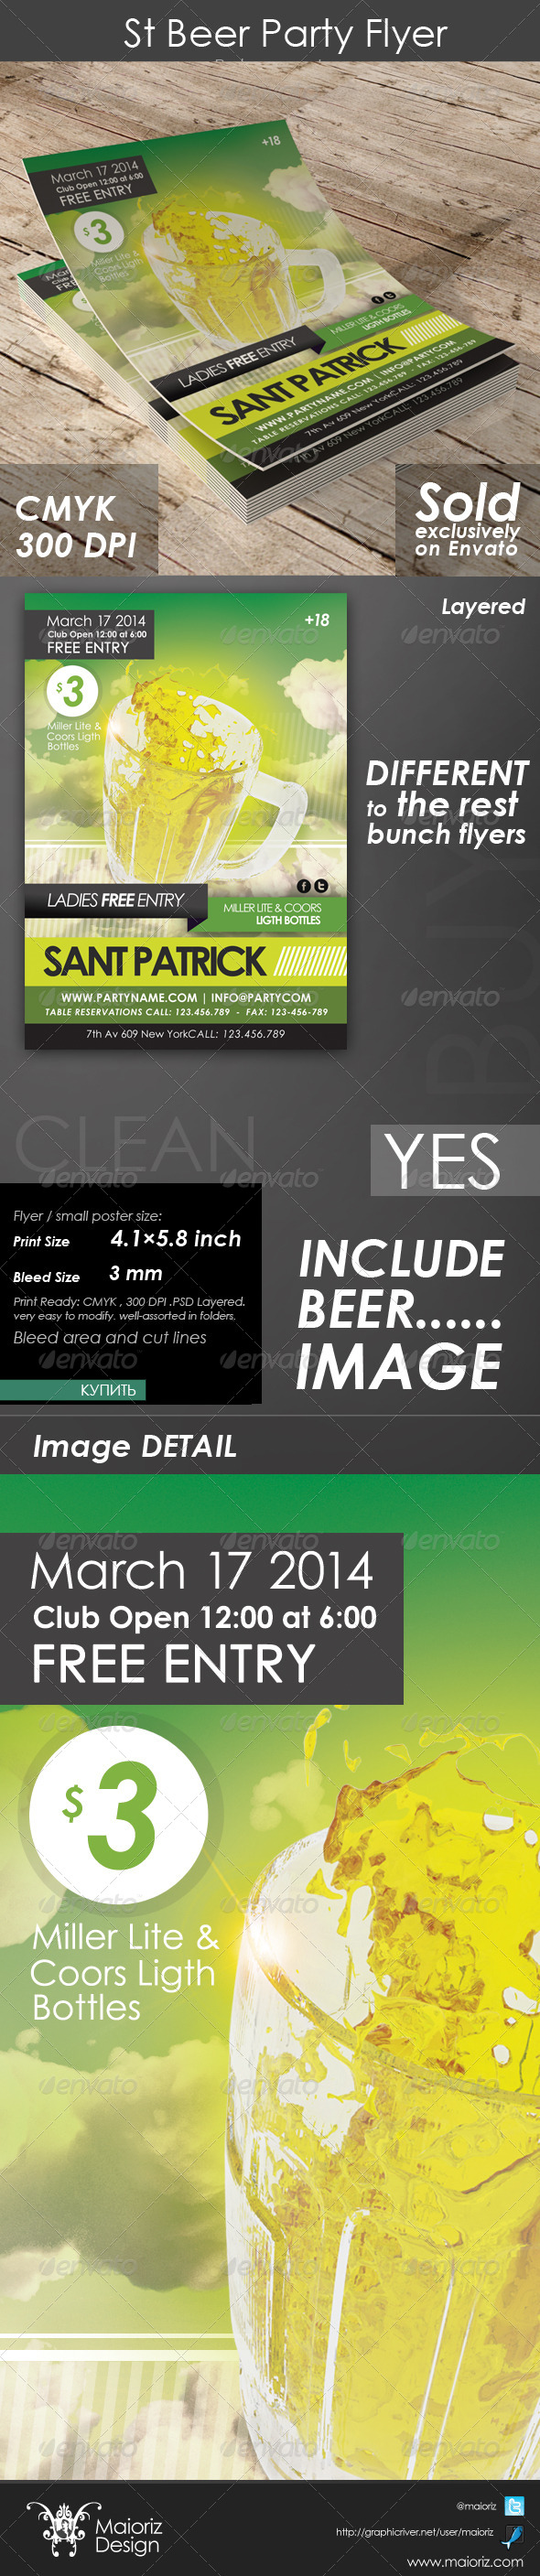 GraphicRiver St Beer Party Flyer 4481538